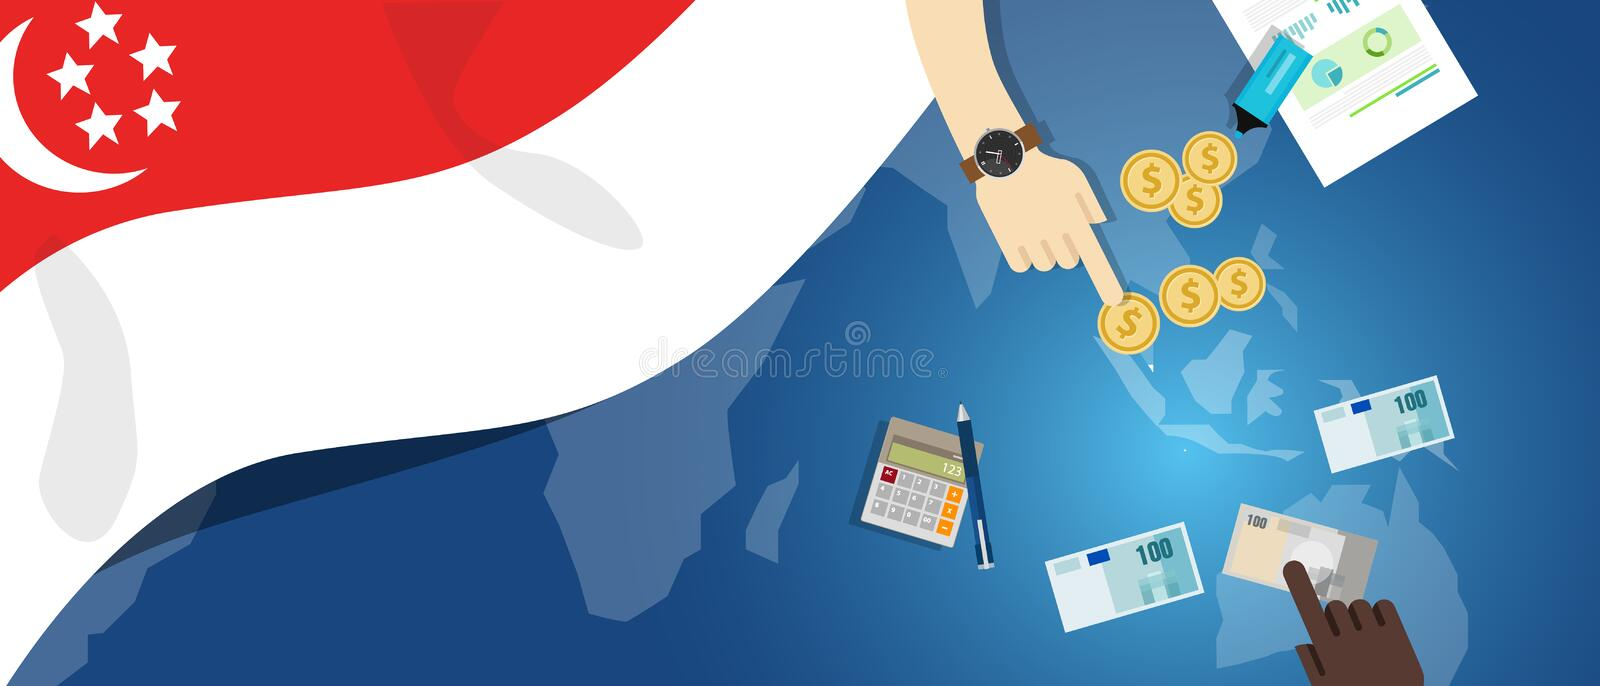 Singapore Asia economy fiscal money trade concept illustration of financial banking budget with flag map and currency. Vector stock illustration